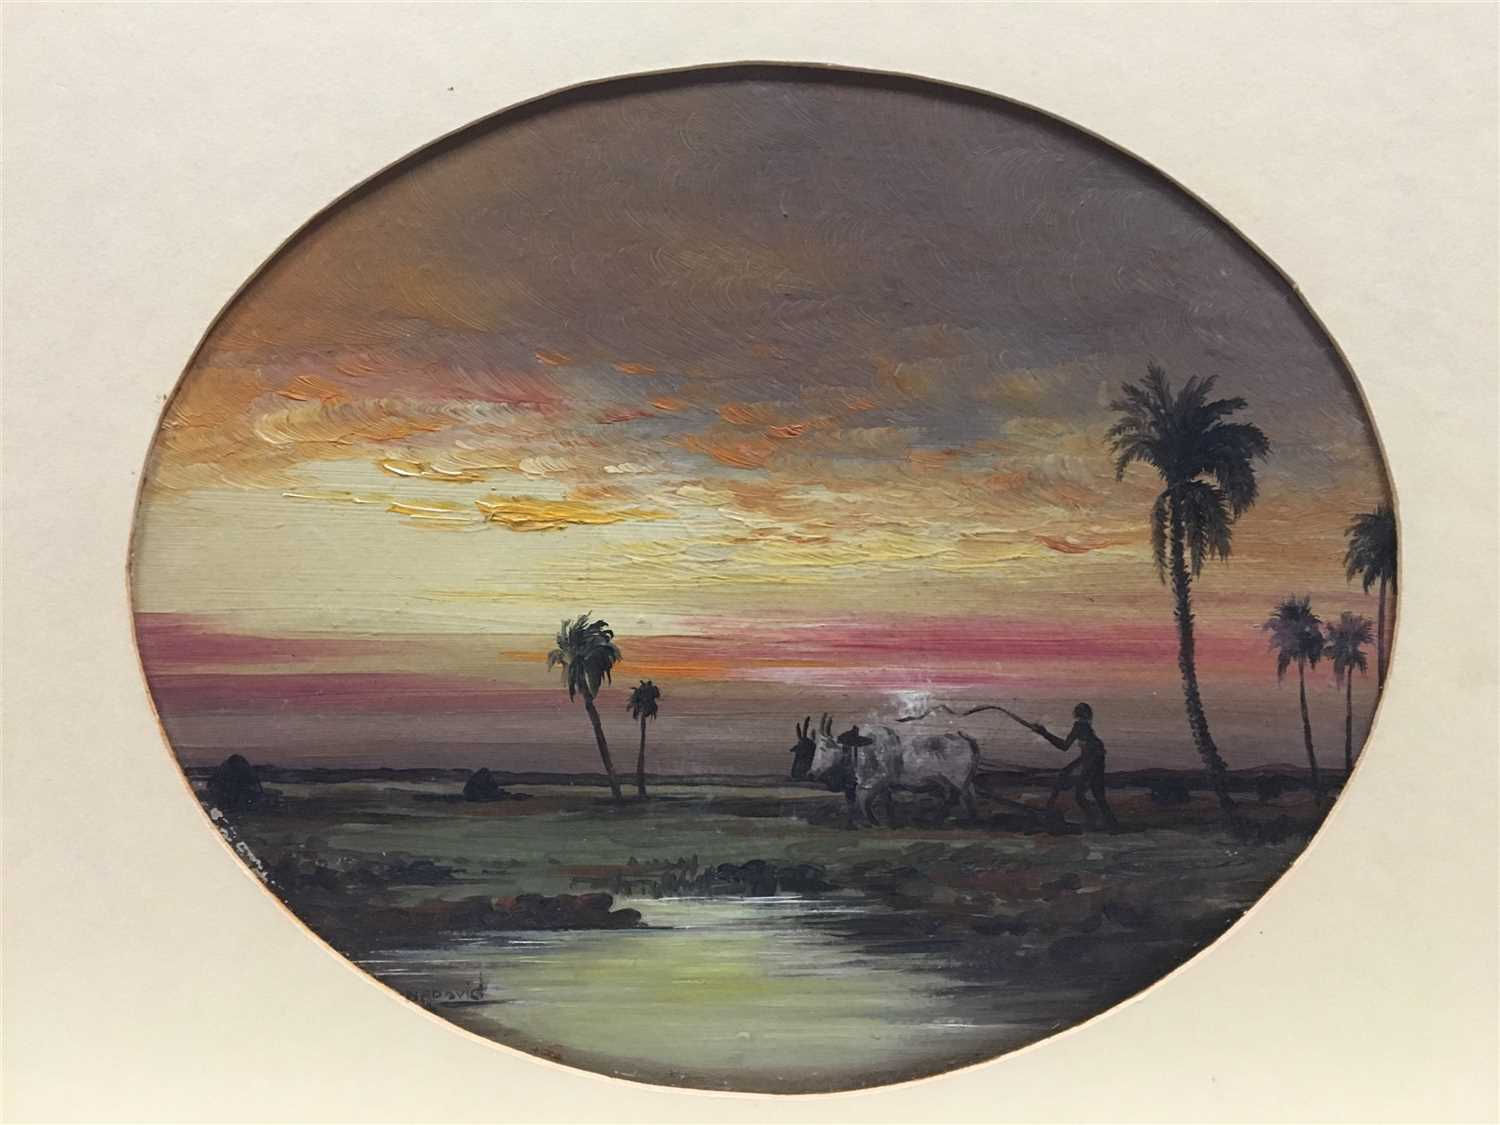 Lot 468-INDIAN SUNSET ON THE FARM, A WATERCOLOUR ATTRIBUTED TO HERMINE DAVID